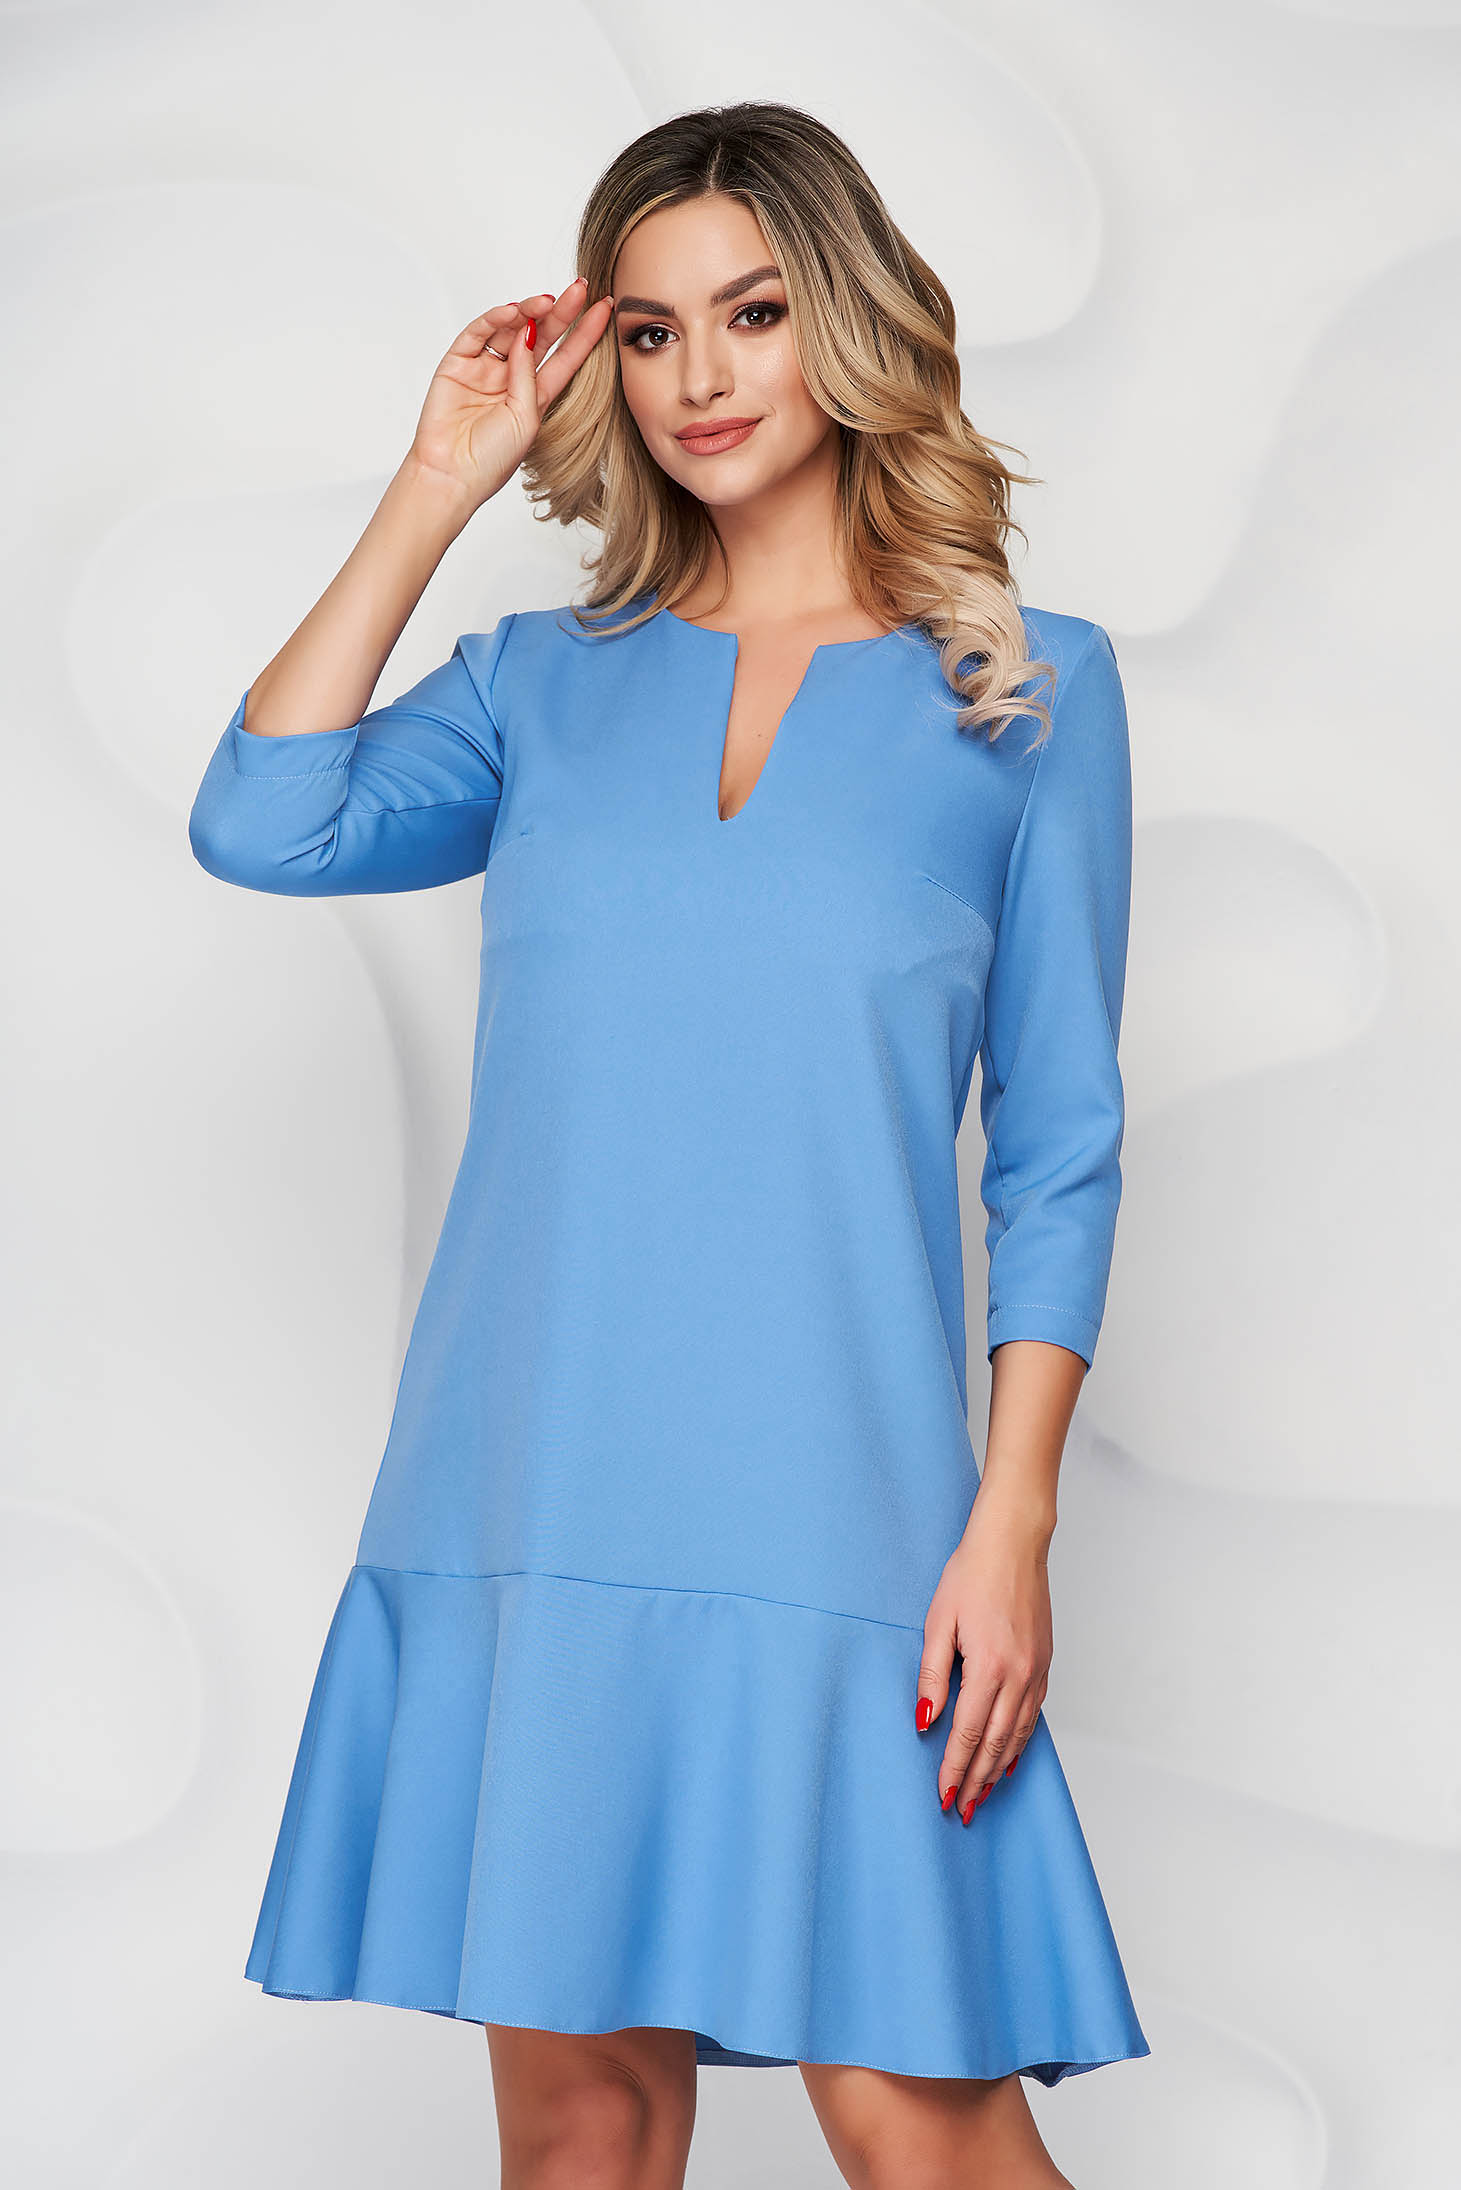 StarShinerS blue short cut loose fit cloth dress with 3/4 sleeves